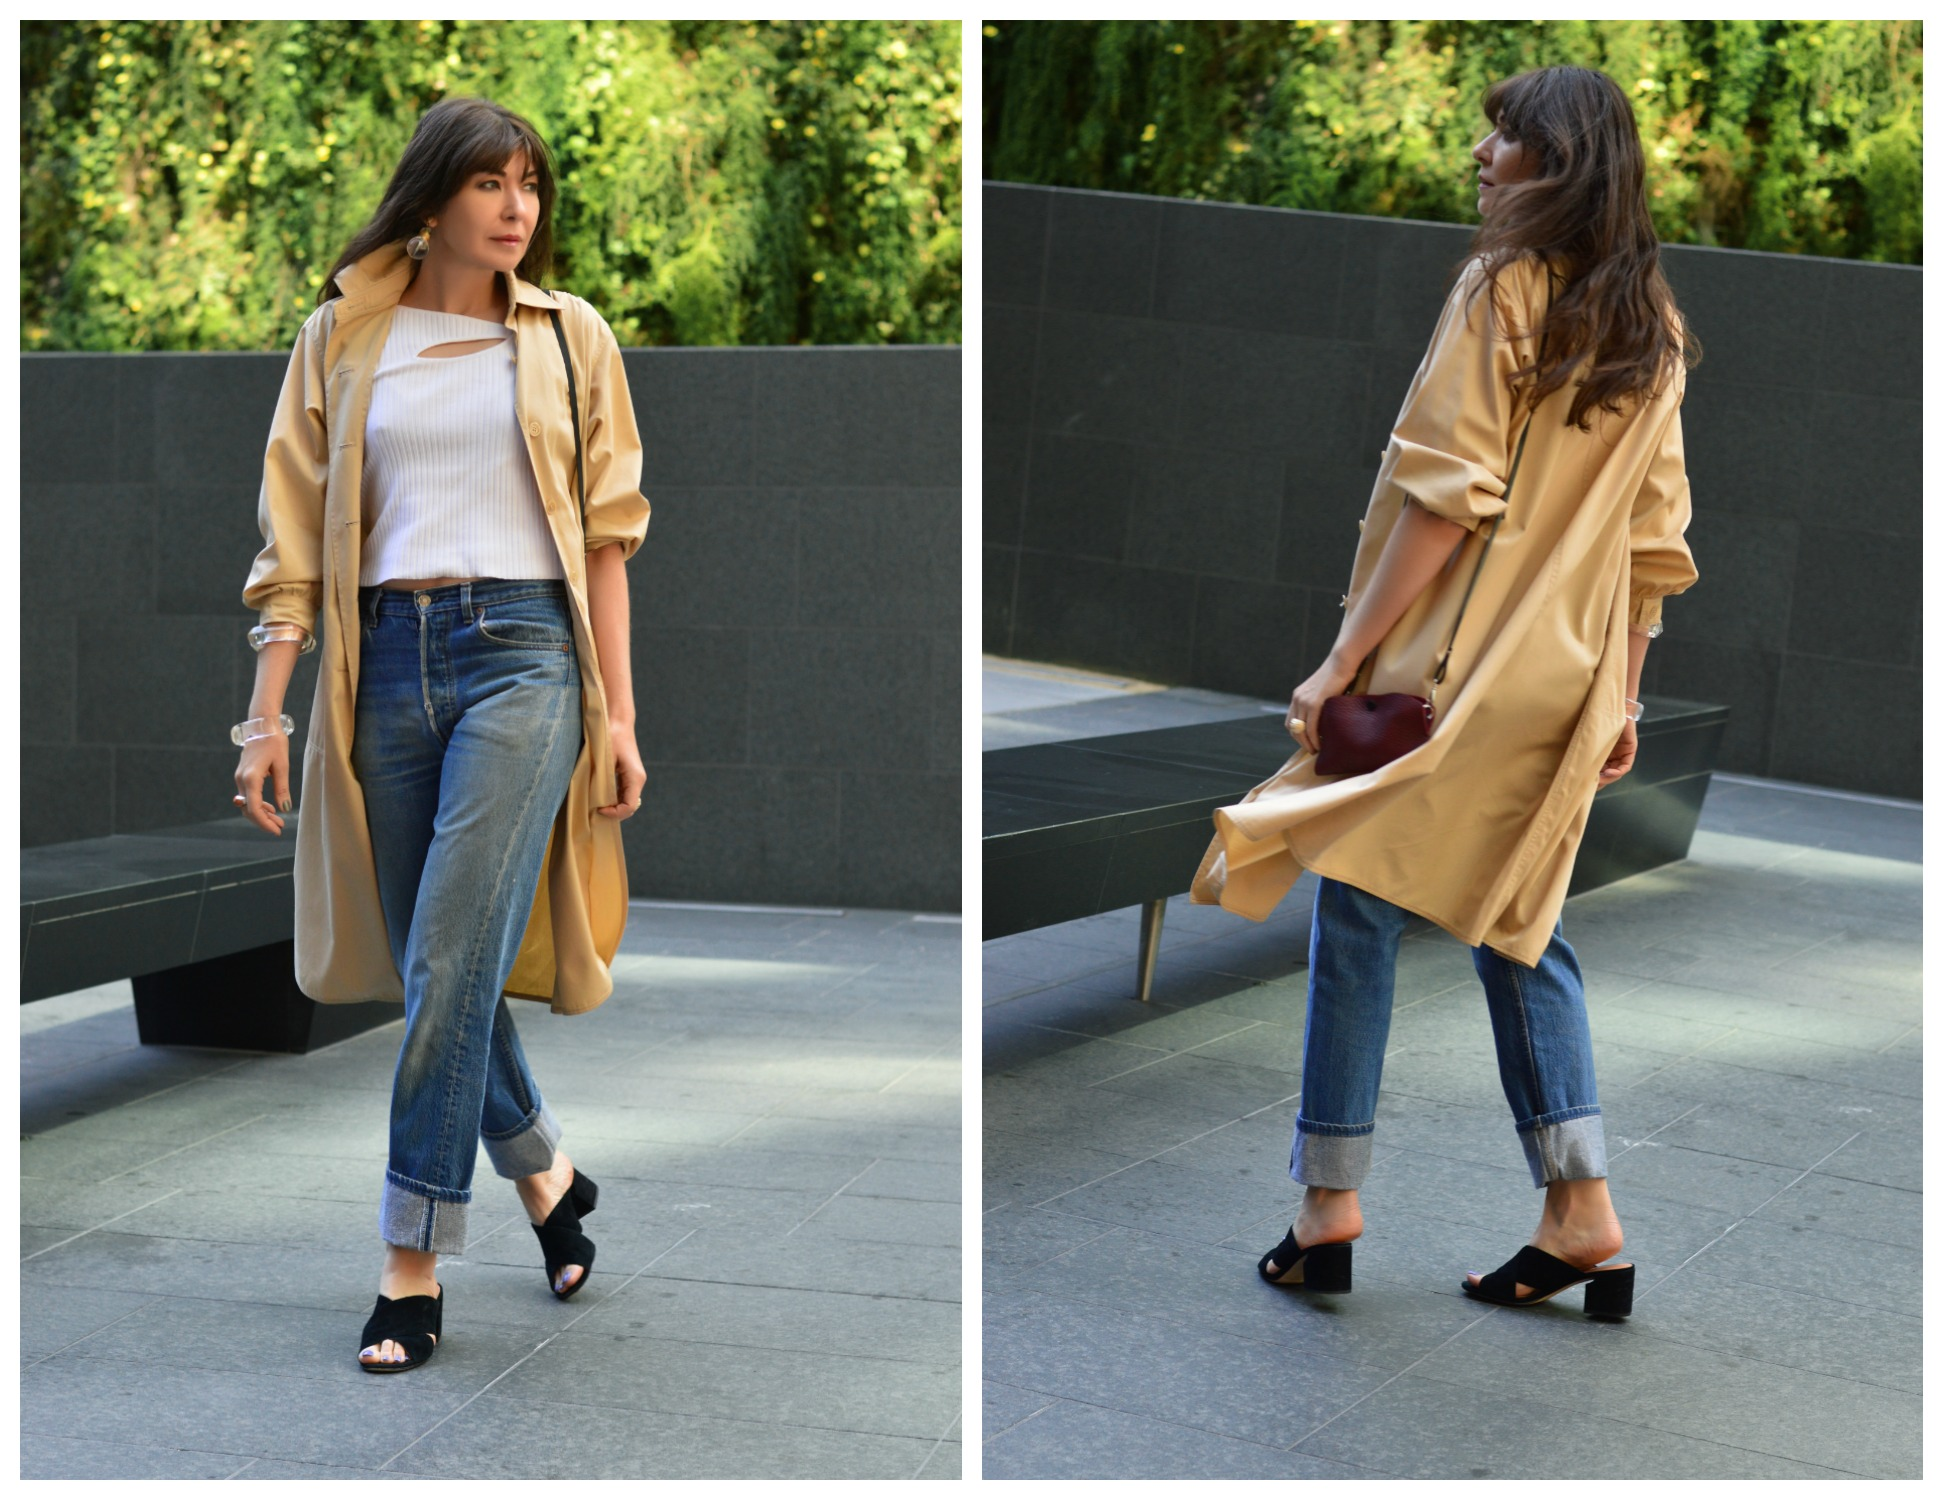 Courreges duster and vintage Levi's jeans.